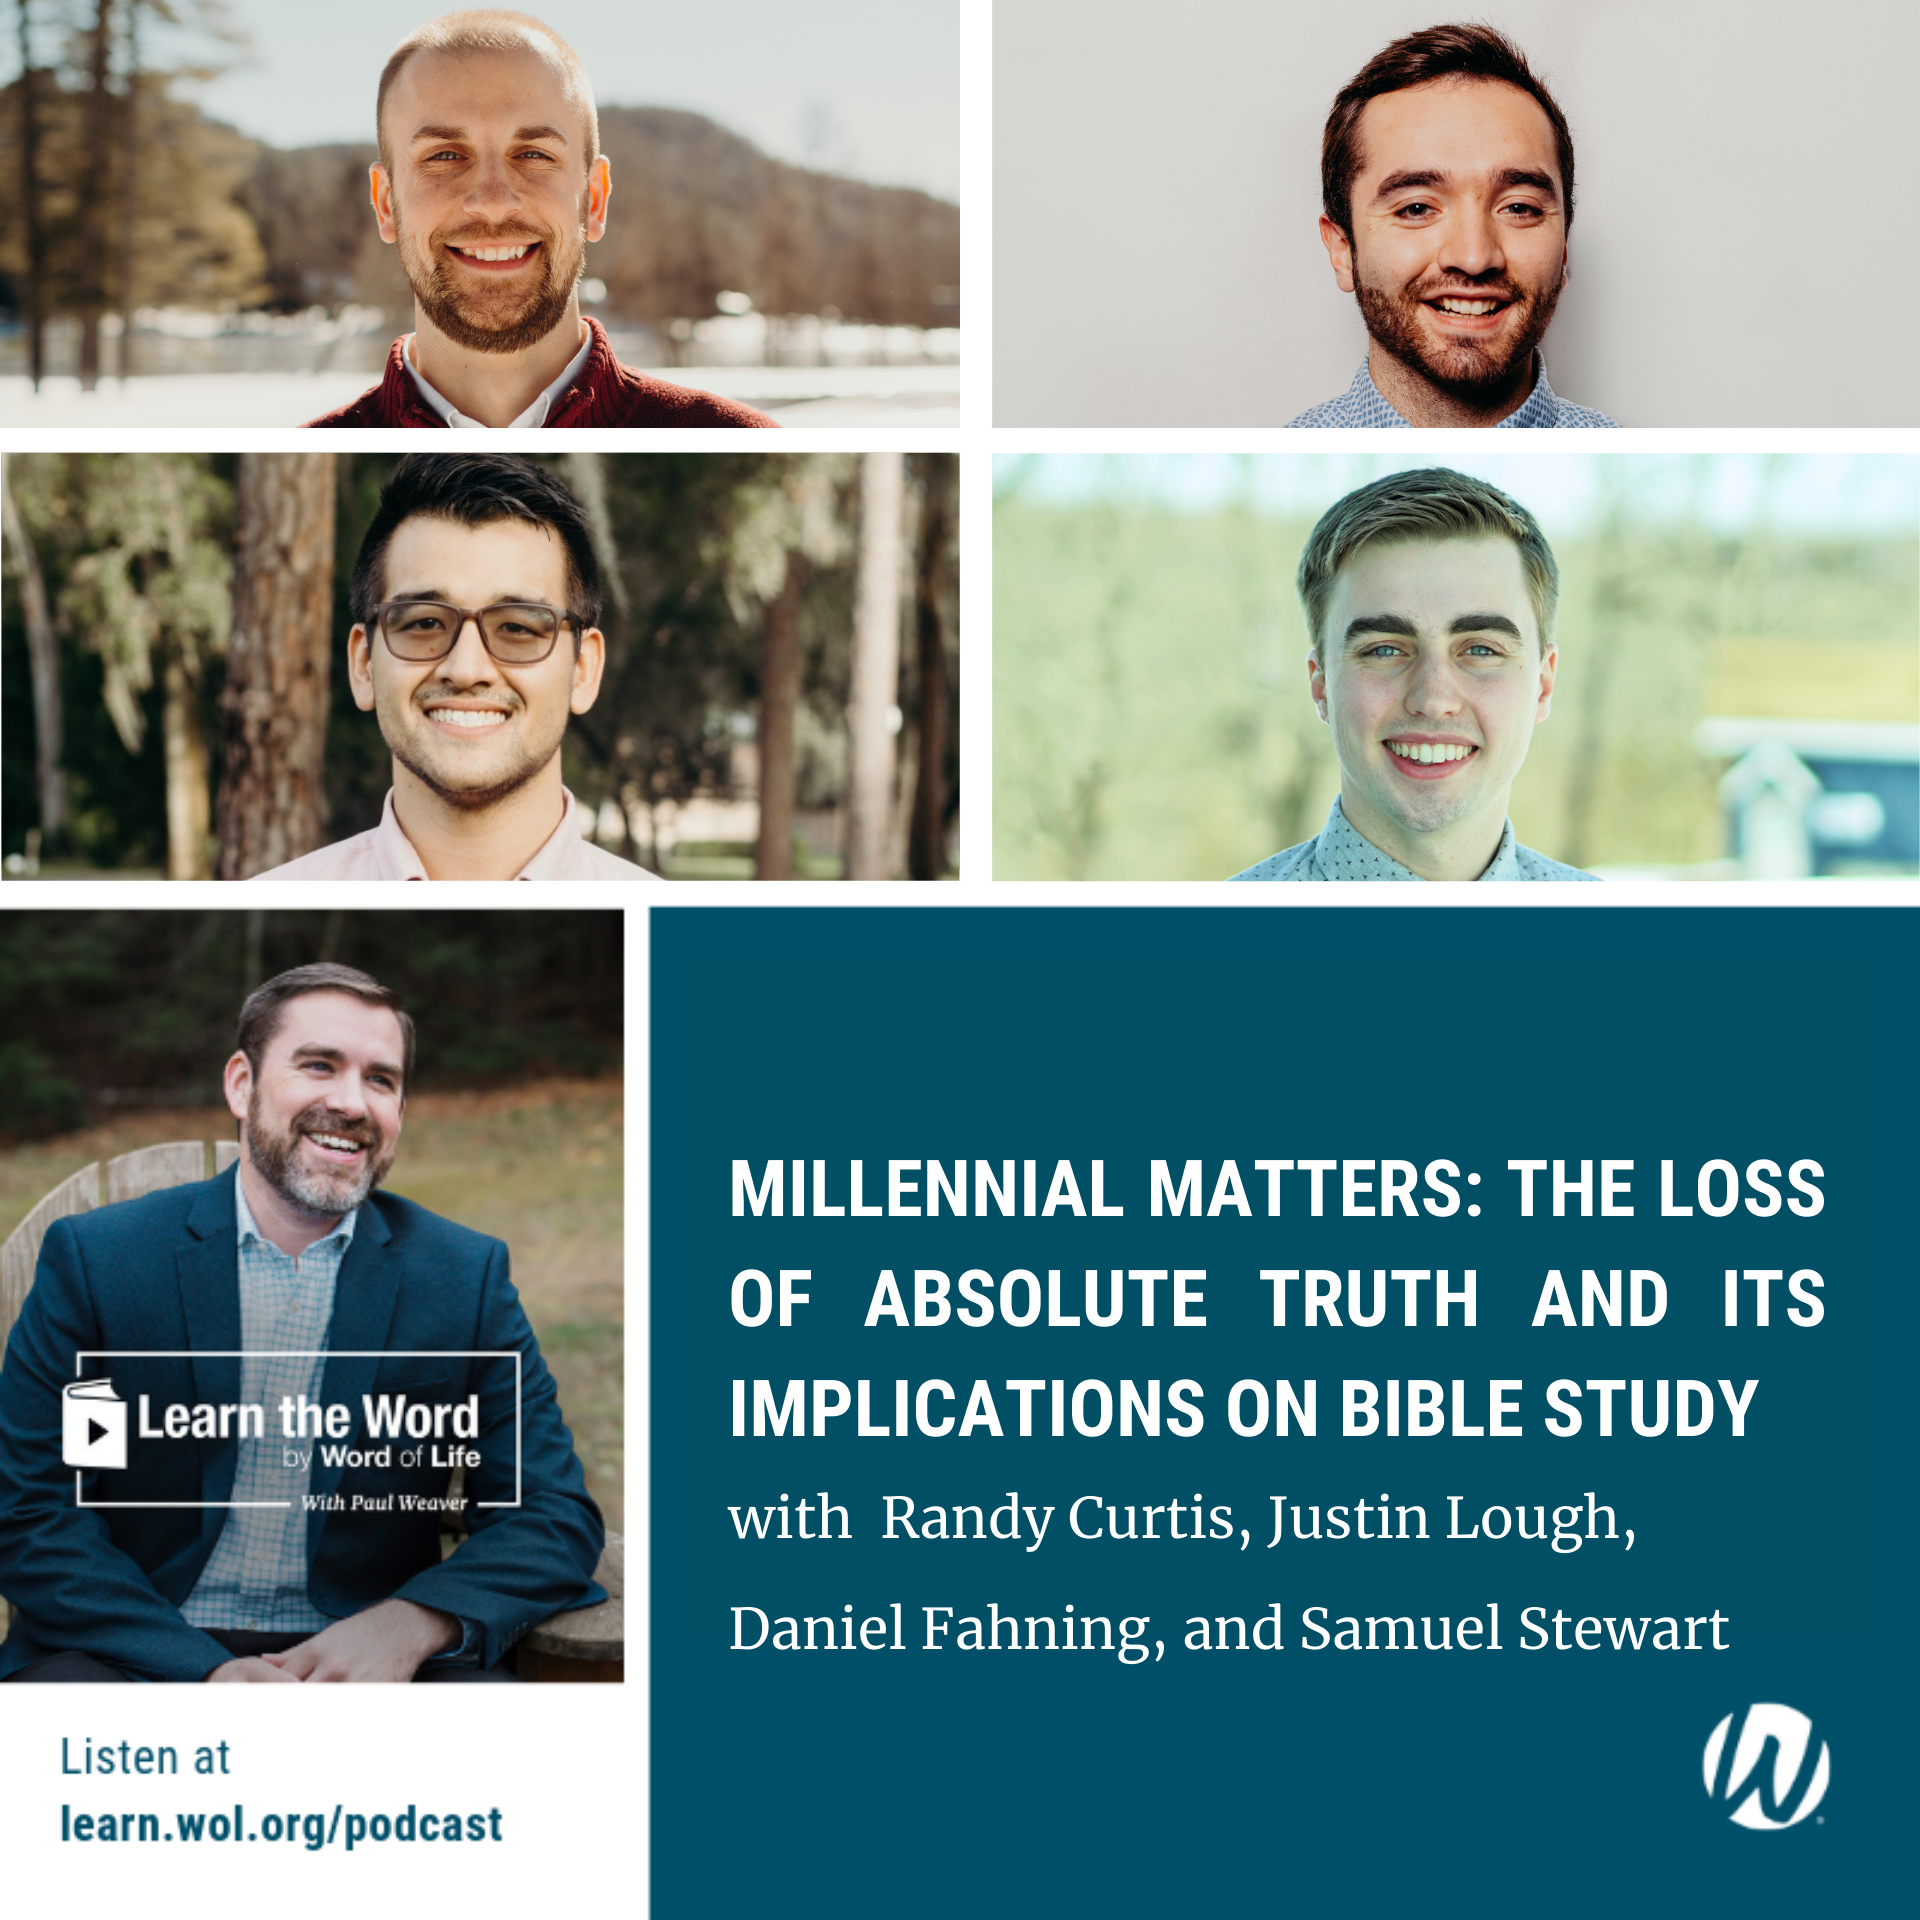 Millennial Matters_ The Loss of Absolute Truth and Its Implications on Bible Study